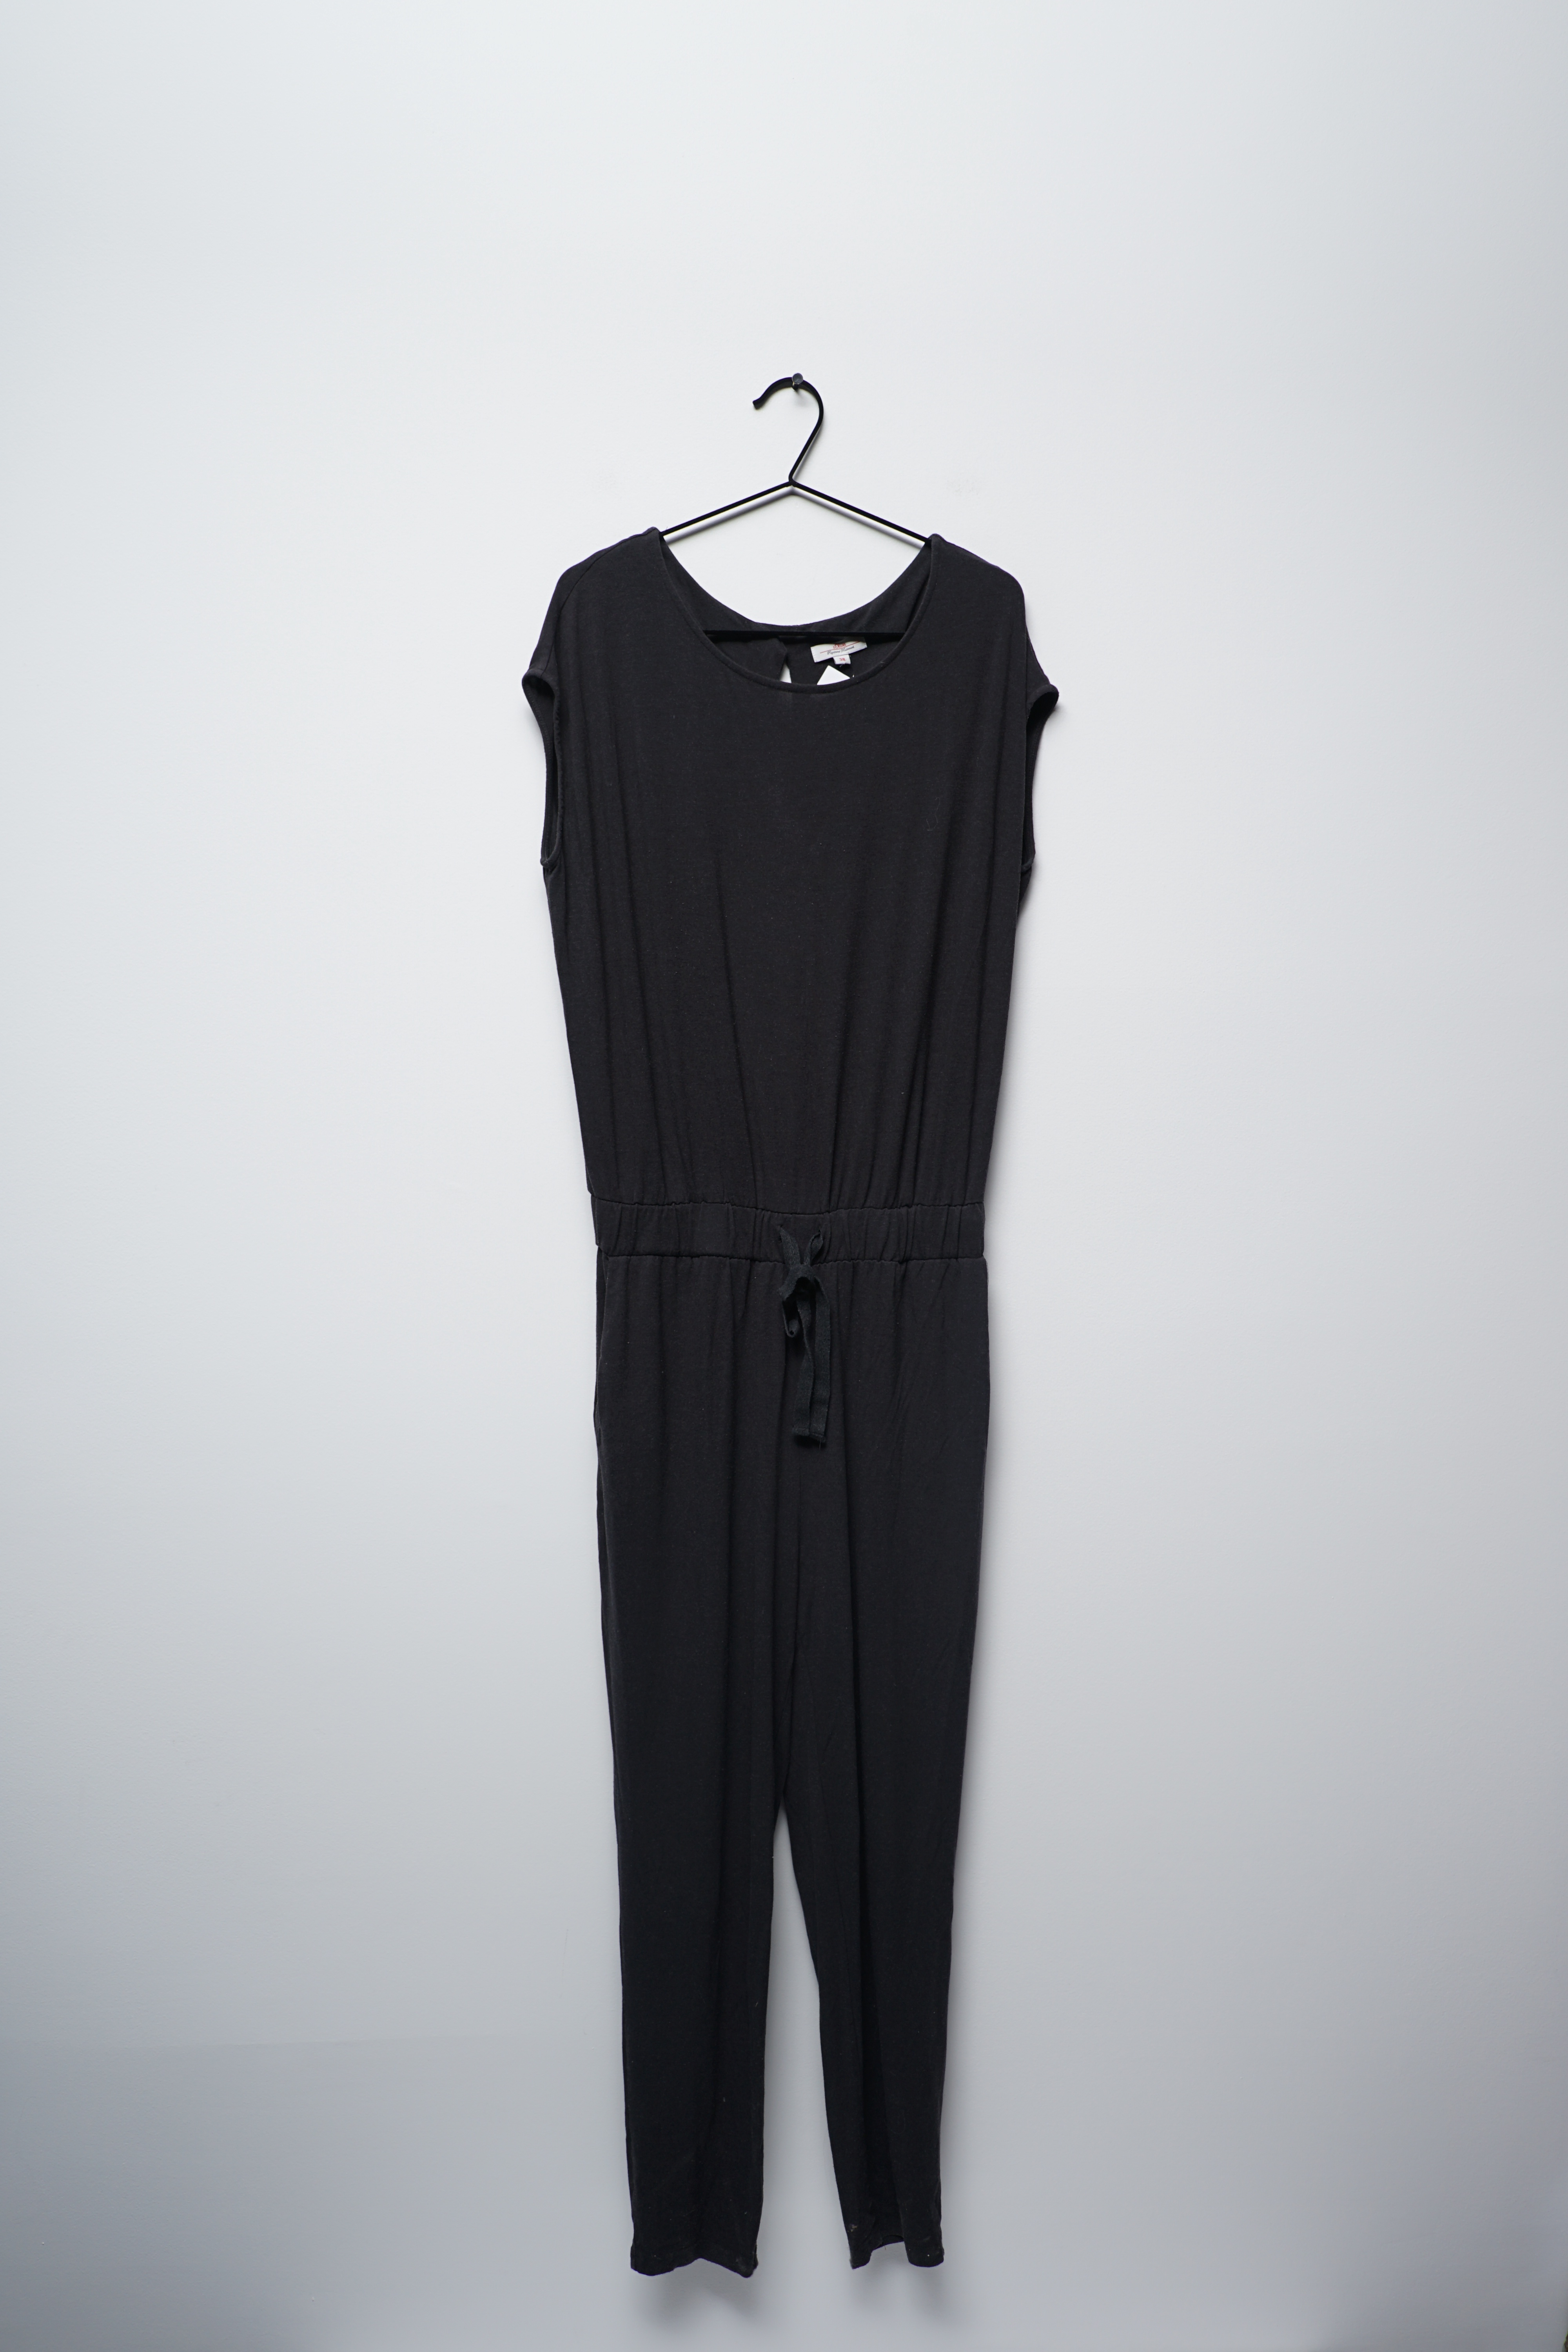 s.Oliver Jumpsuit / Overall Grau Gr.38